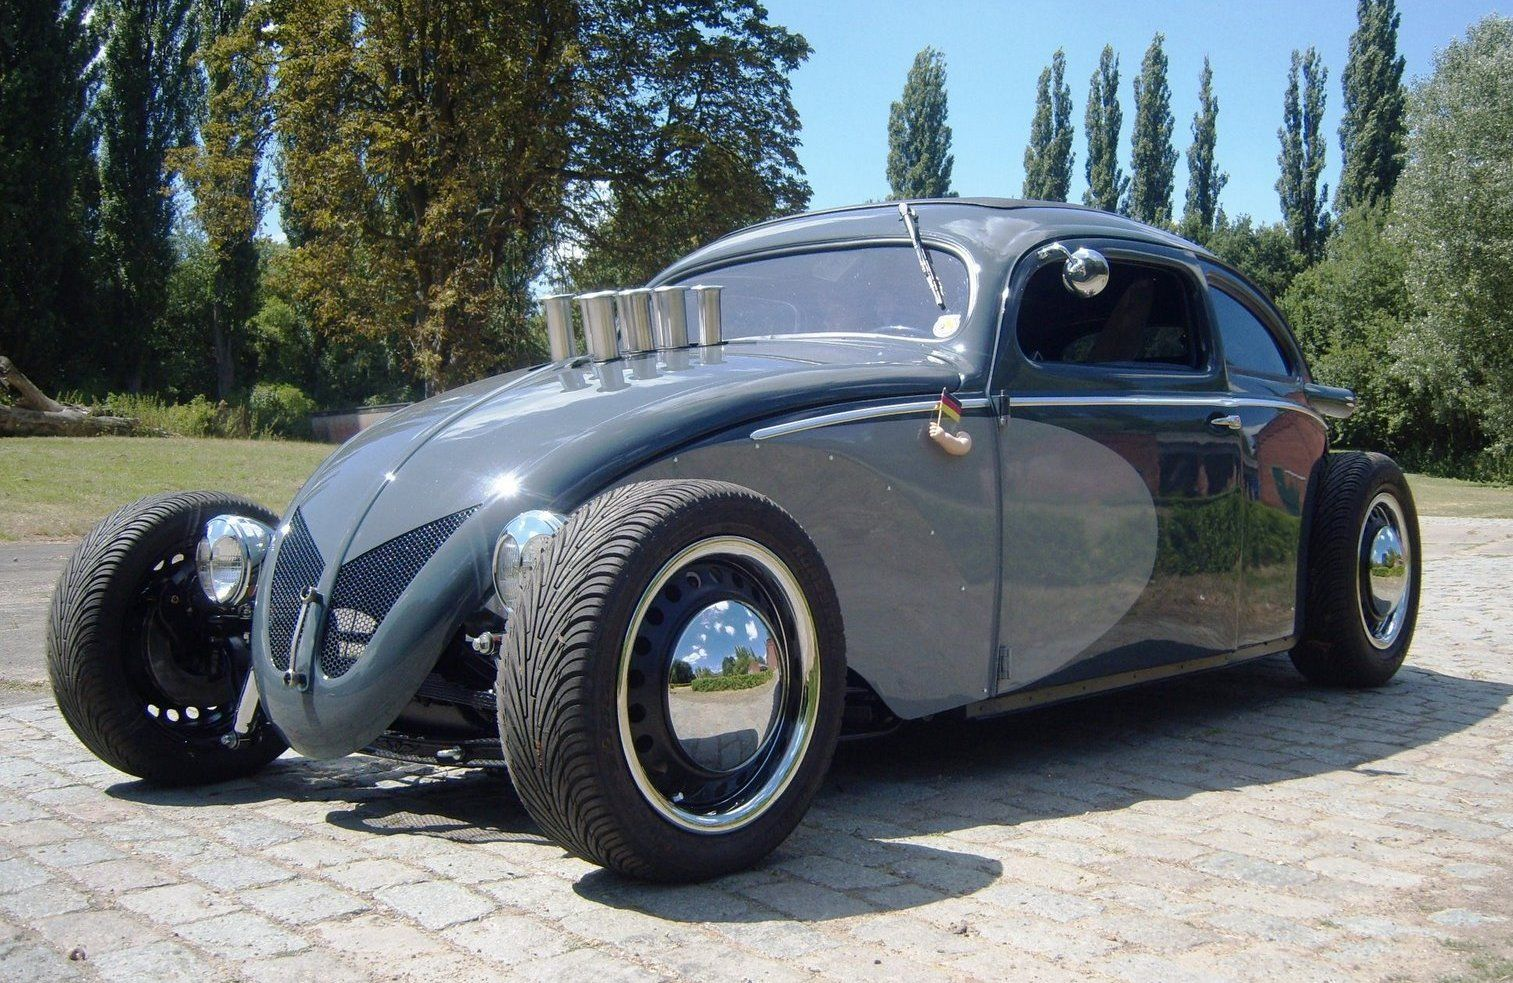 V8 beetle the bug i would own